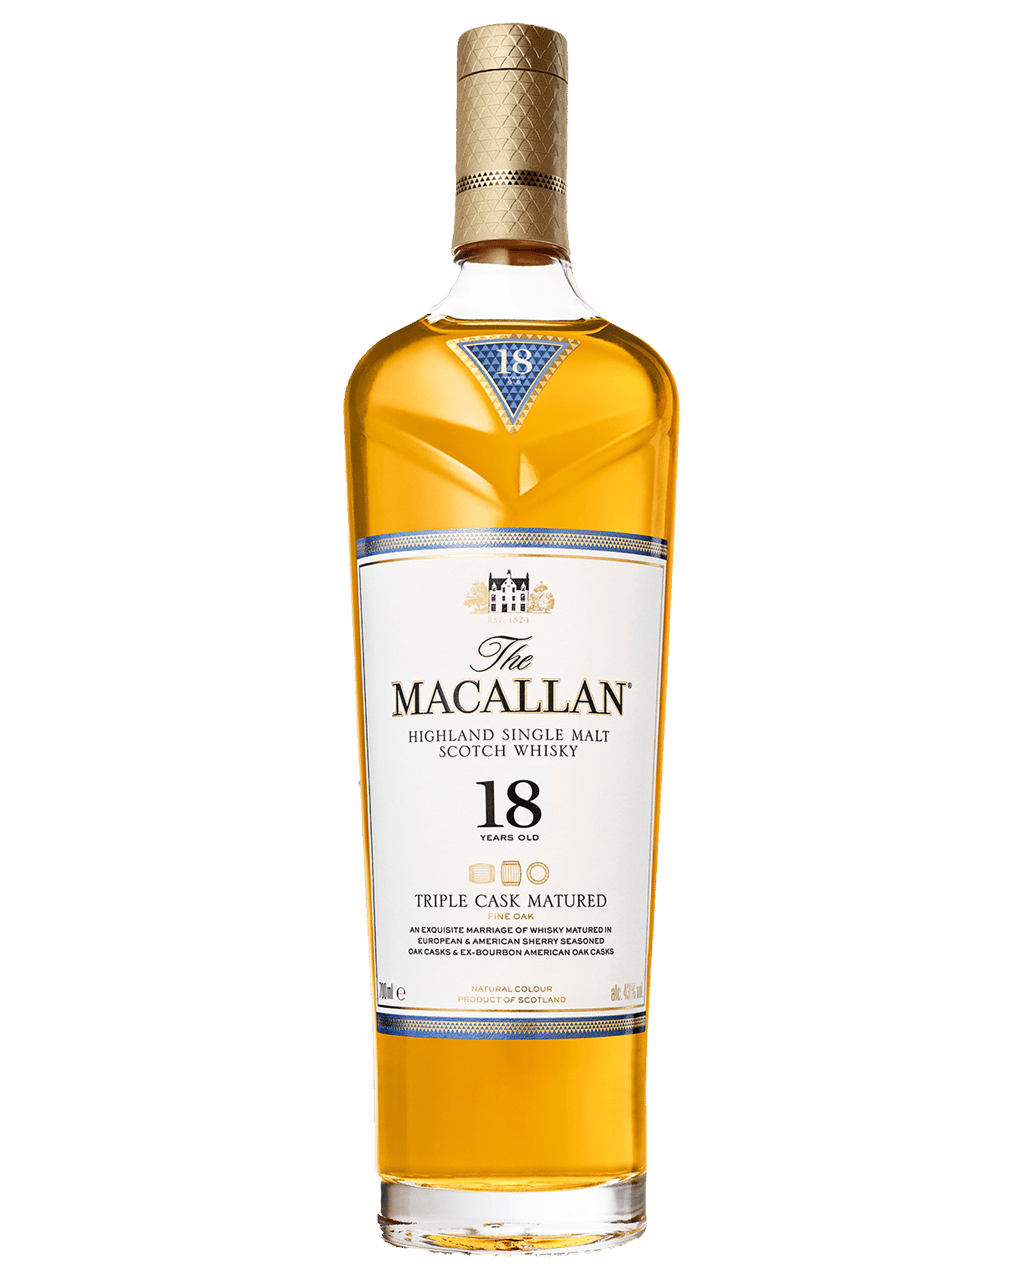 f611c00c897 The Macallan 18 Year Old Scotch Whisky 700mL